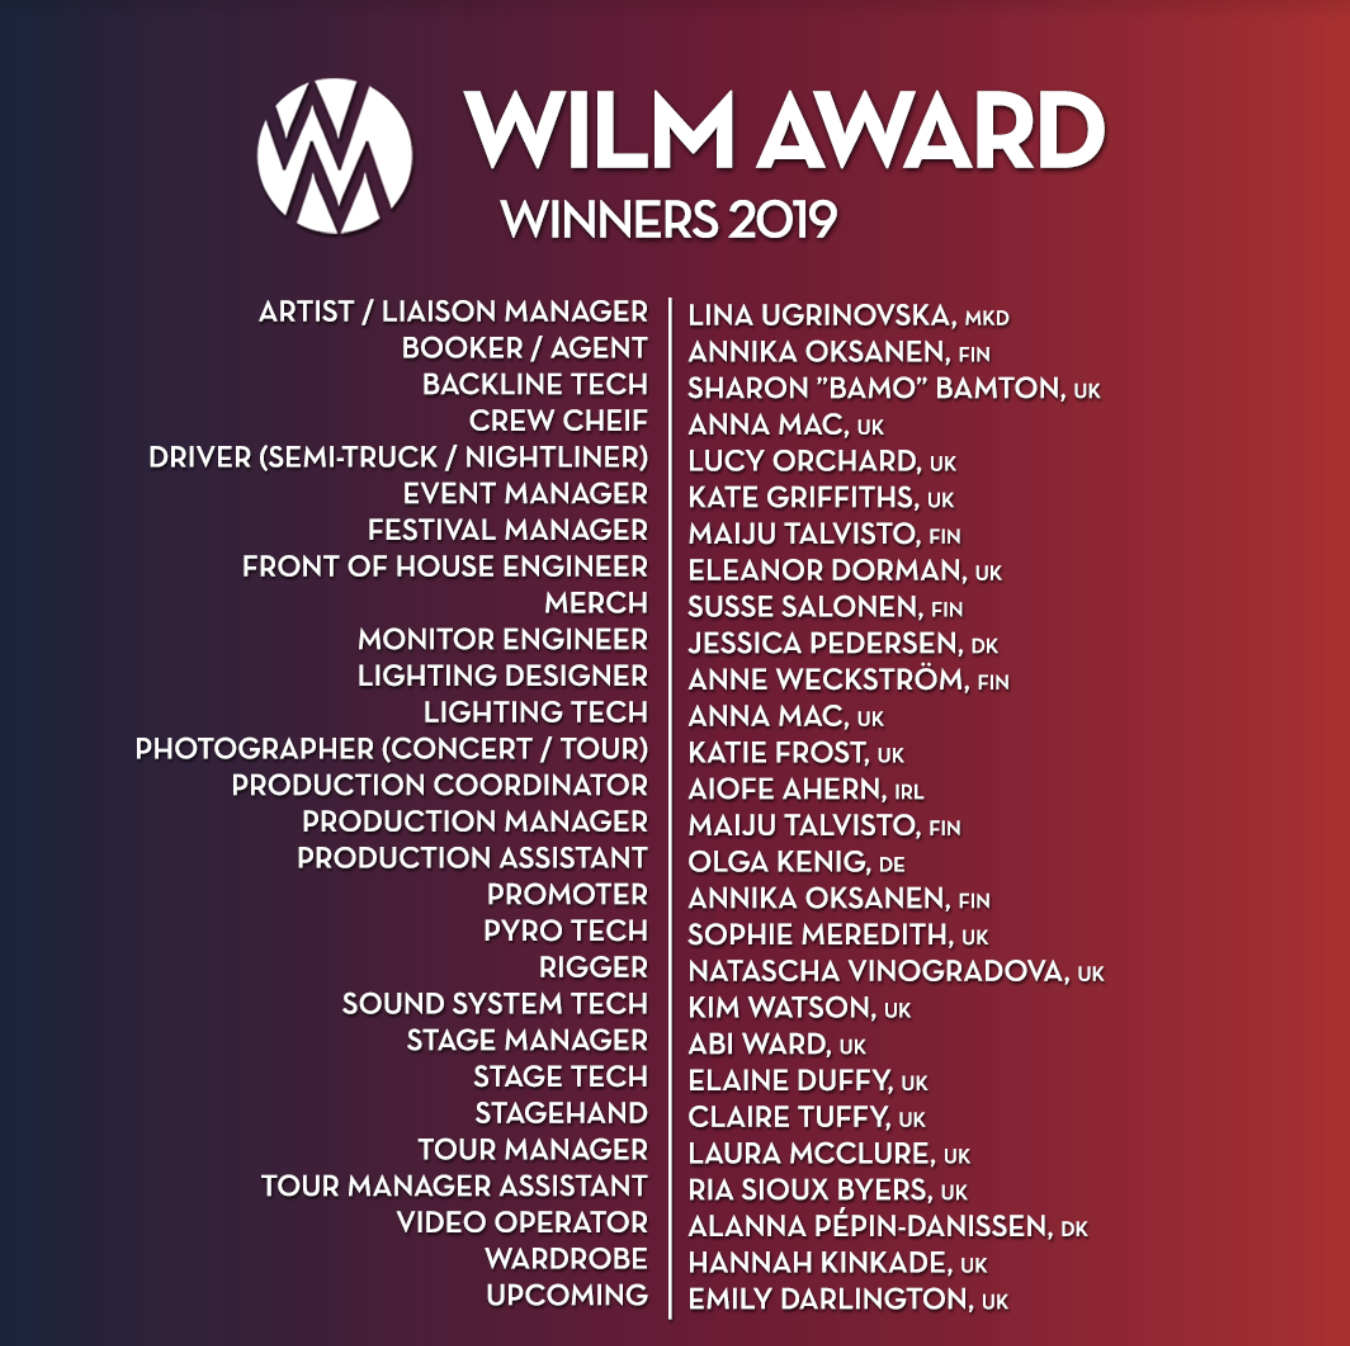 WILM Awards 2019